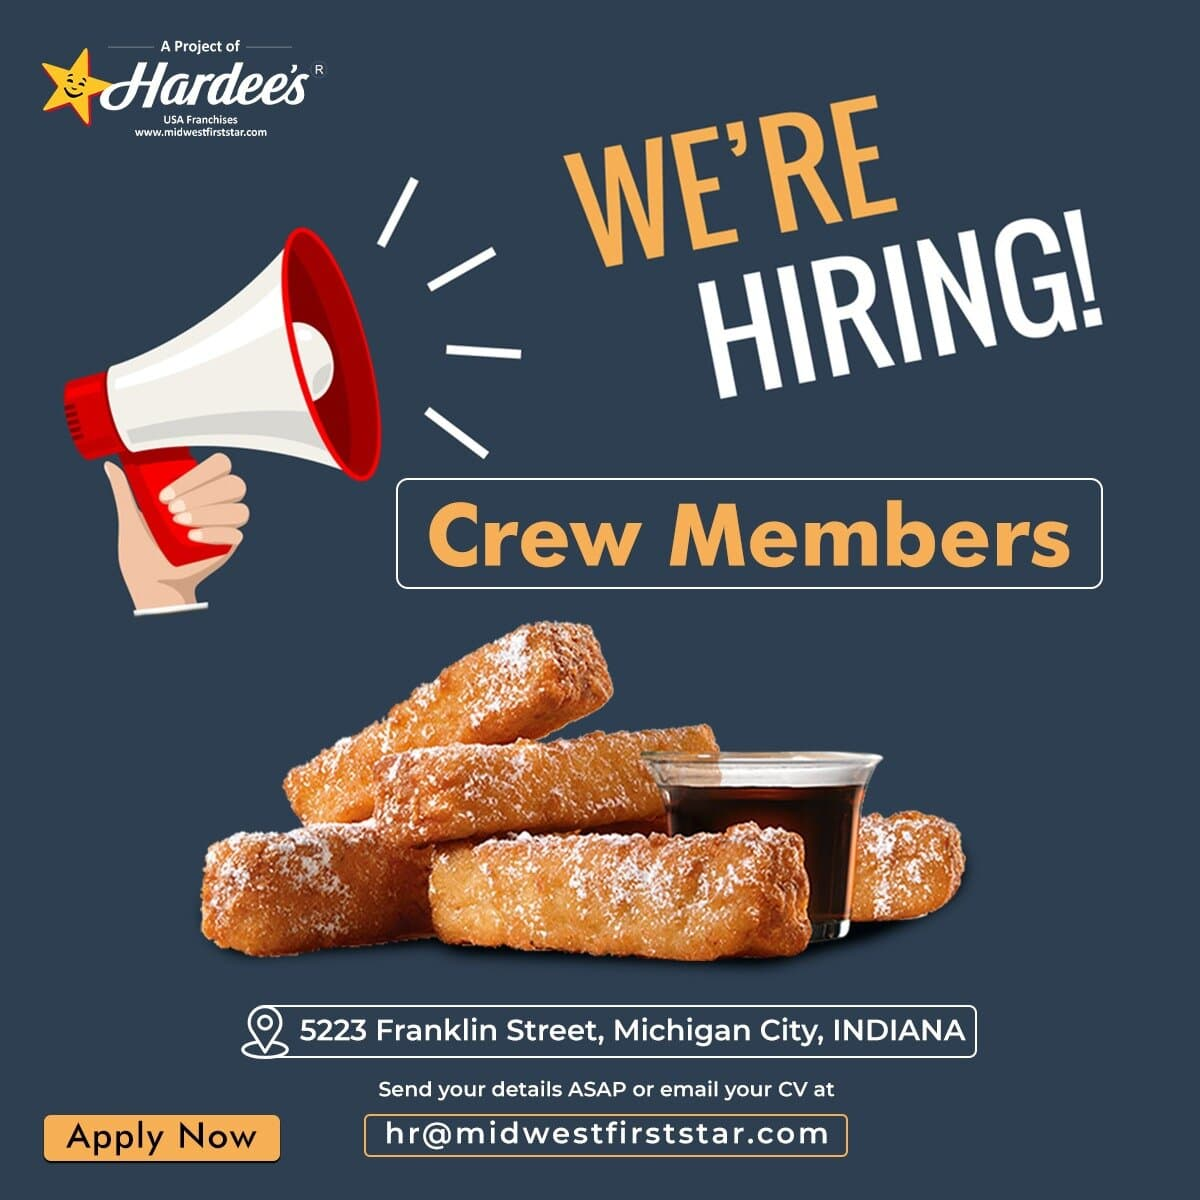 Looking for Crew Members for our restaurant in MICHIGAN CITY, INDIANA